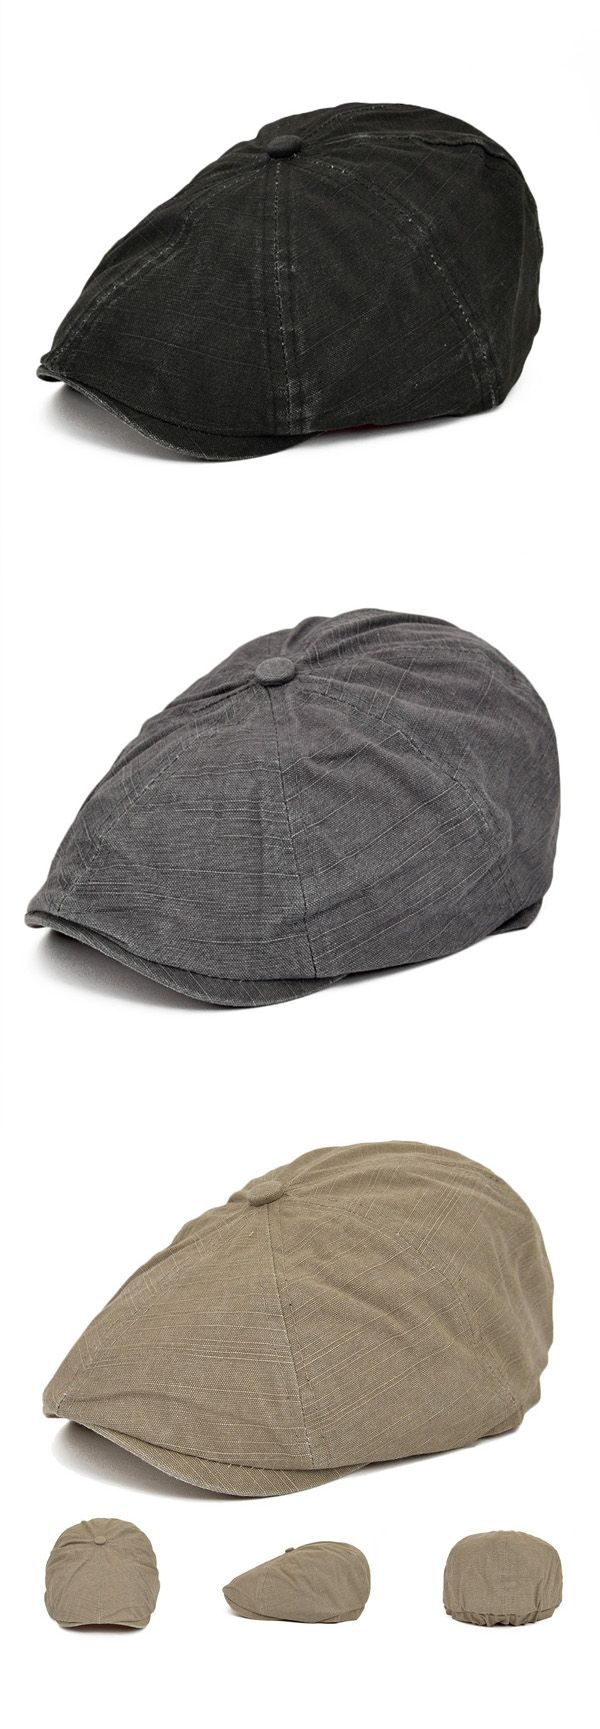 US$8.68+Free shipping. Knitted Hat, Beret Hat, Gentleman Cap, Newsboy Cap,Duckbill Golf.Unisex, Buckle Adjustable. Material:Cotton Blend. Color:Gray, Black, Brown, Khaki, Army Green